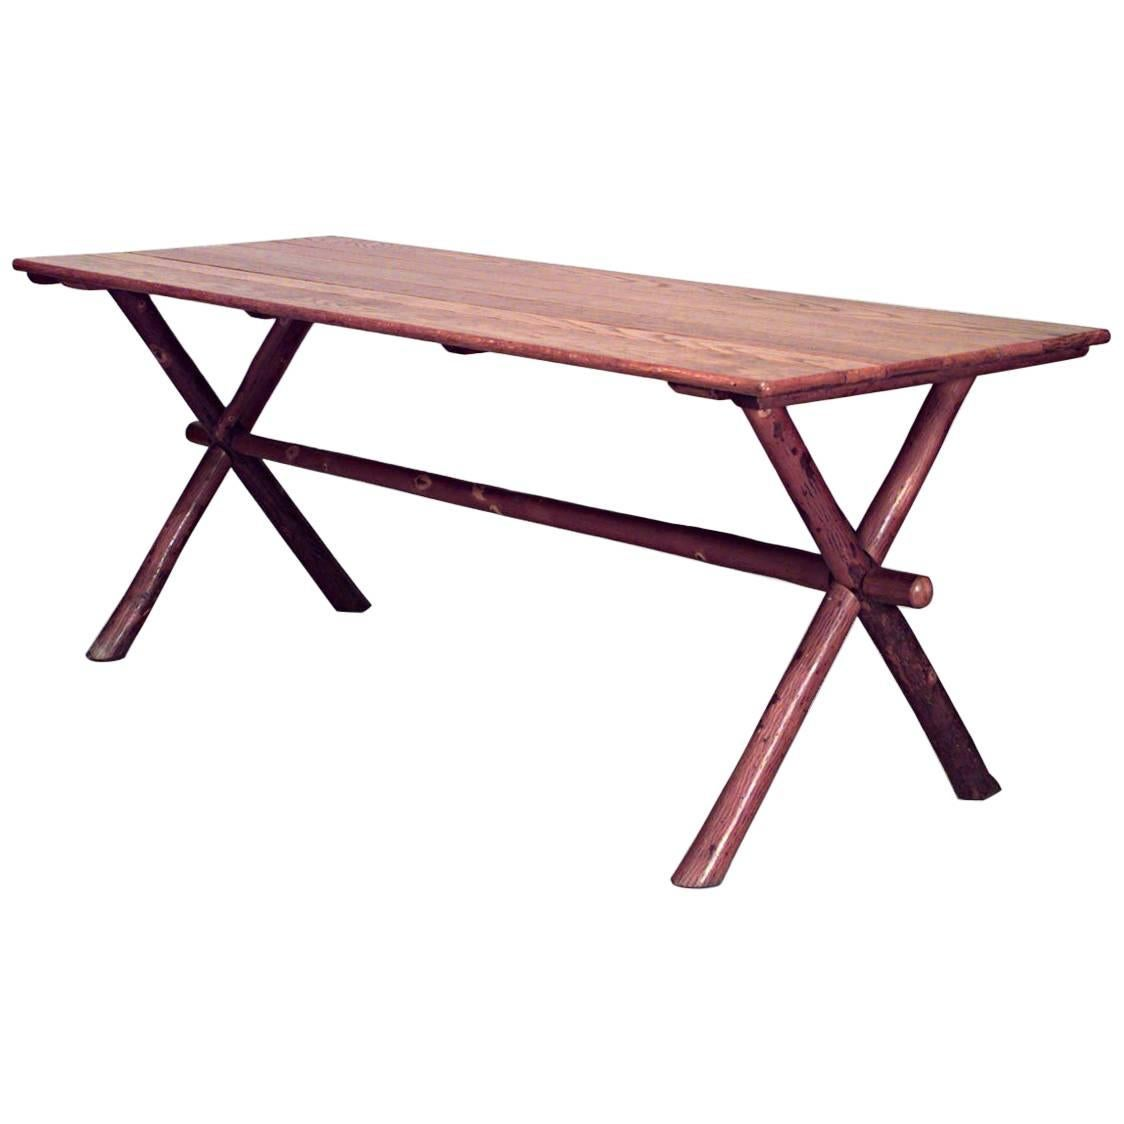 American Rustic Old Hickory Oak Dining 'Picnic' Table